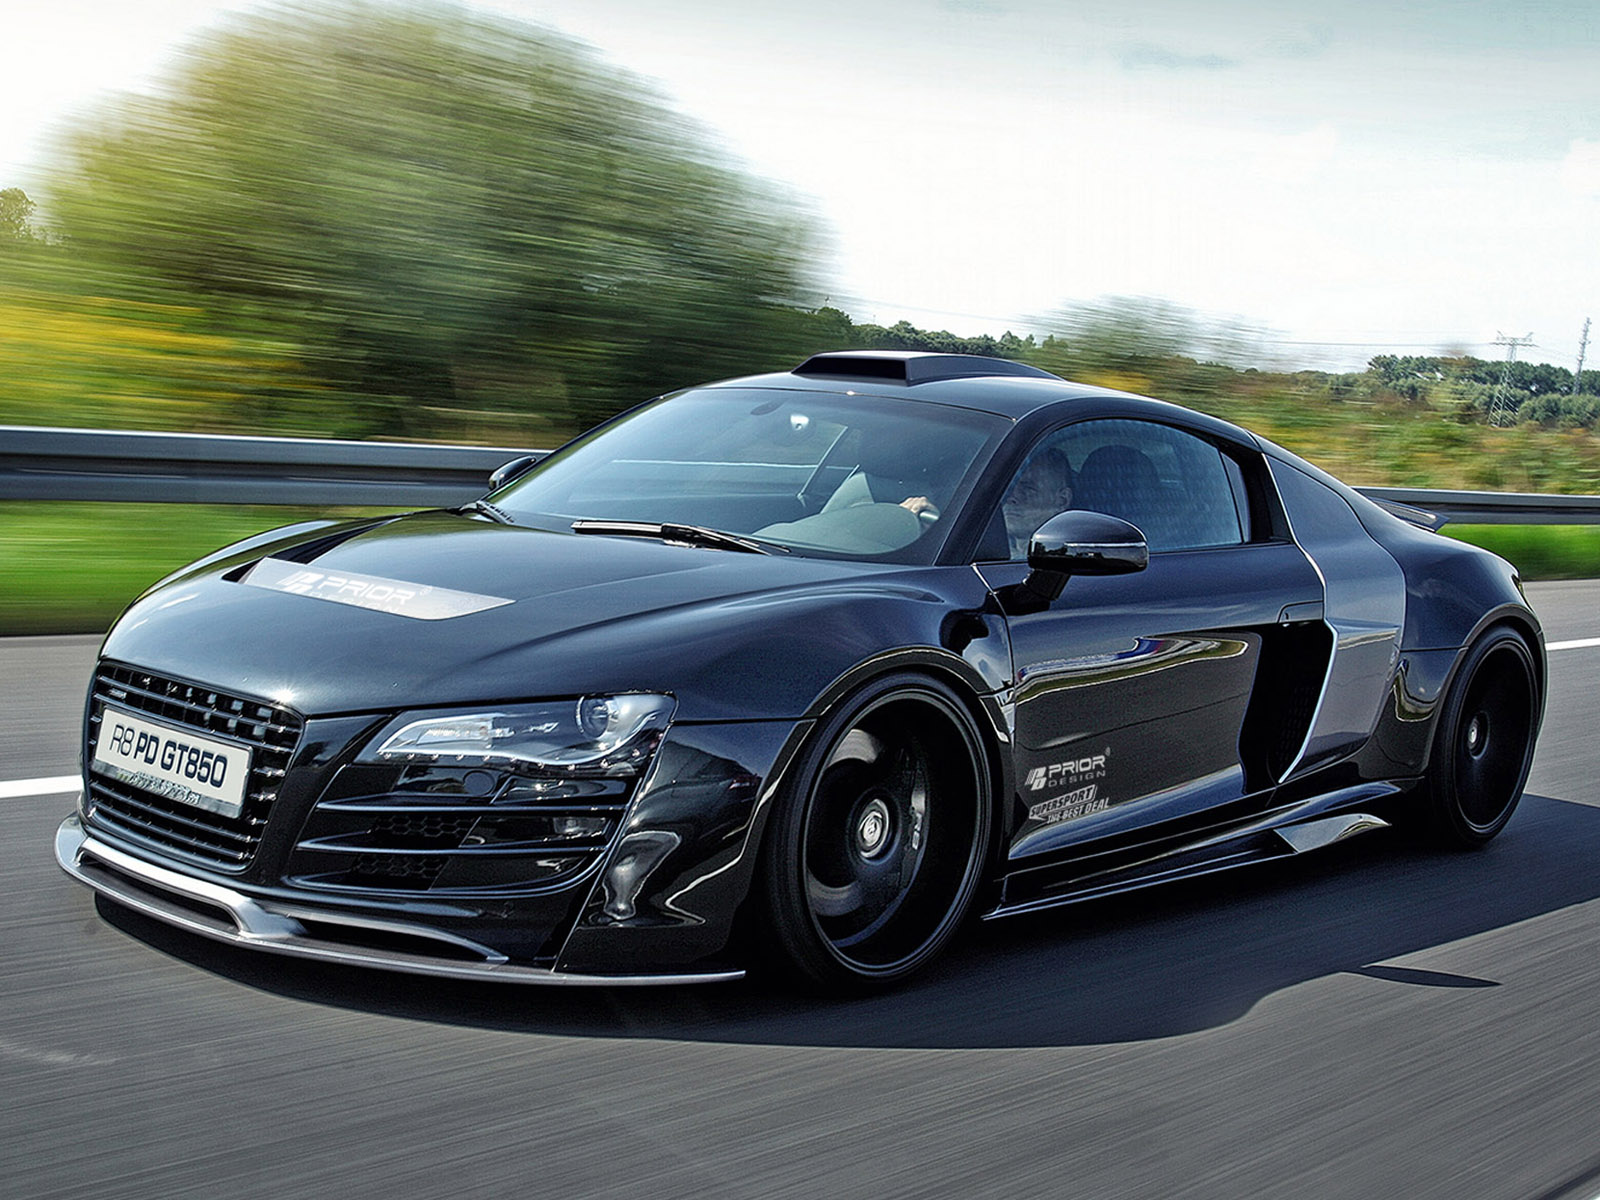 Amazing Audi R8 GT 850 Pictures & Backgrounds